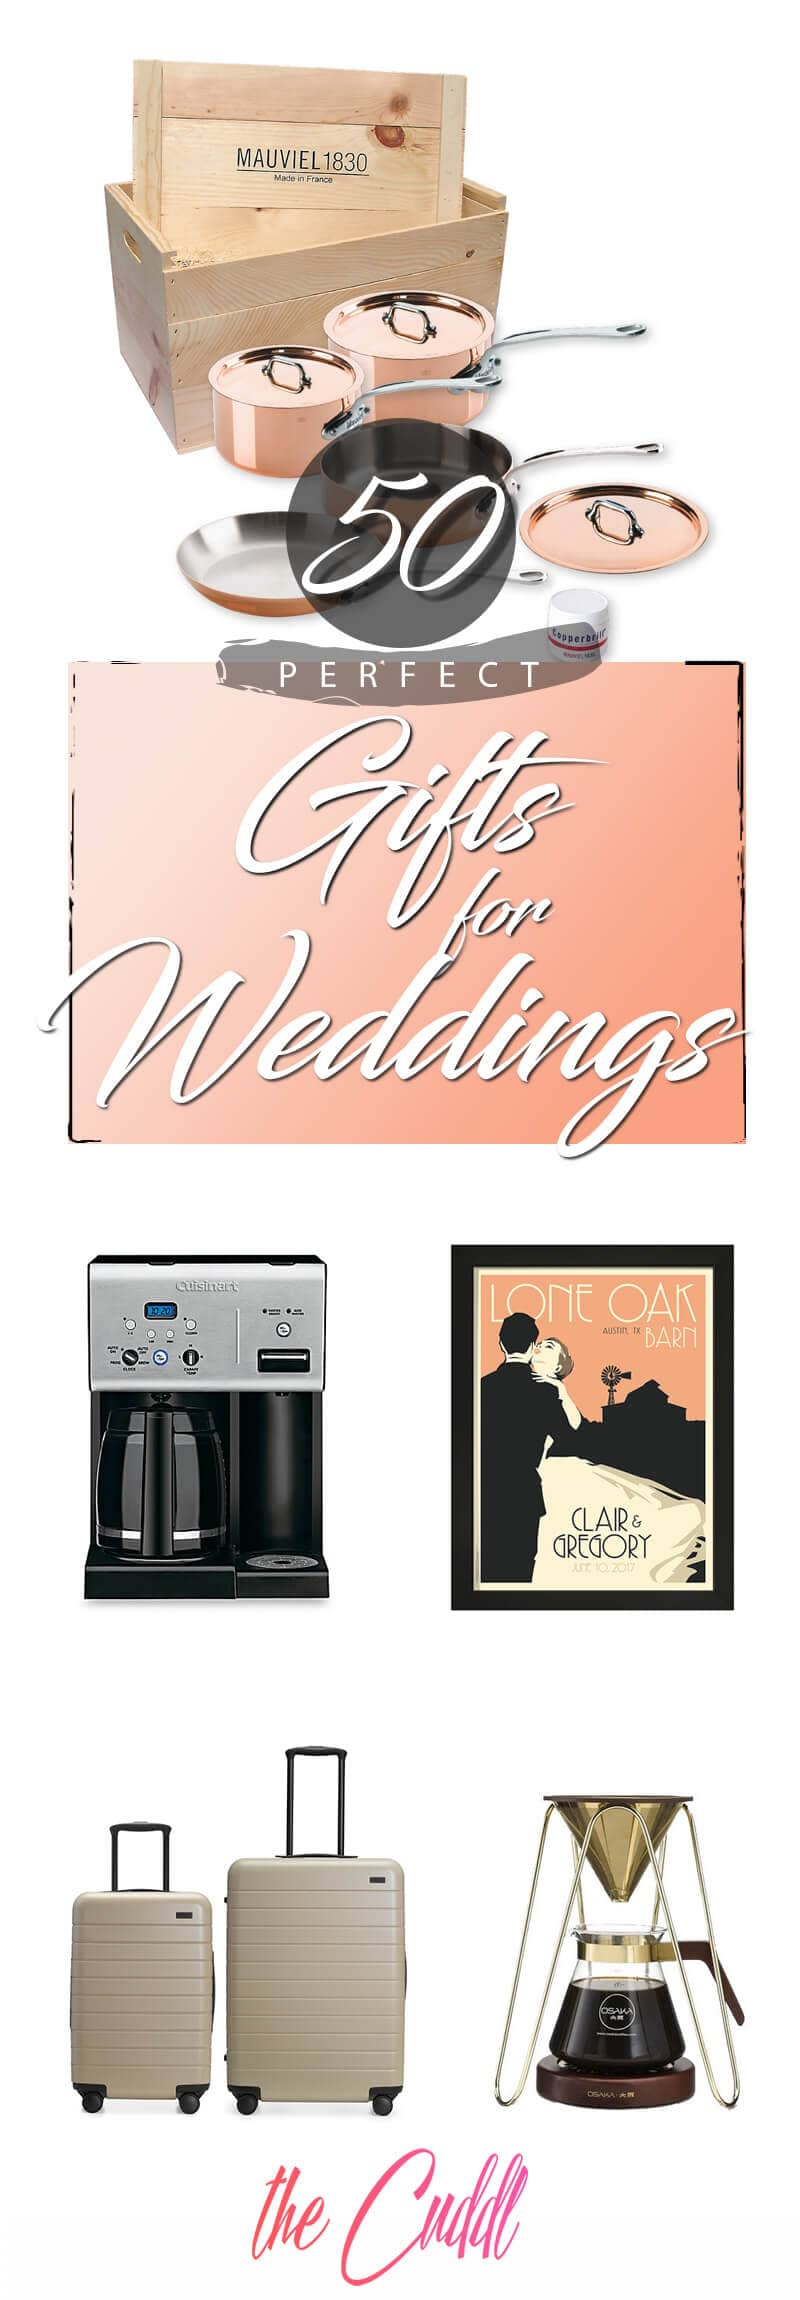 50 Super Fun Wedding Gifts That A Would Be Lucky To Have